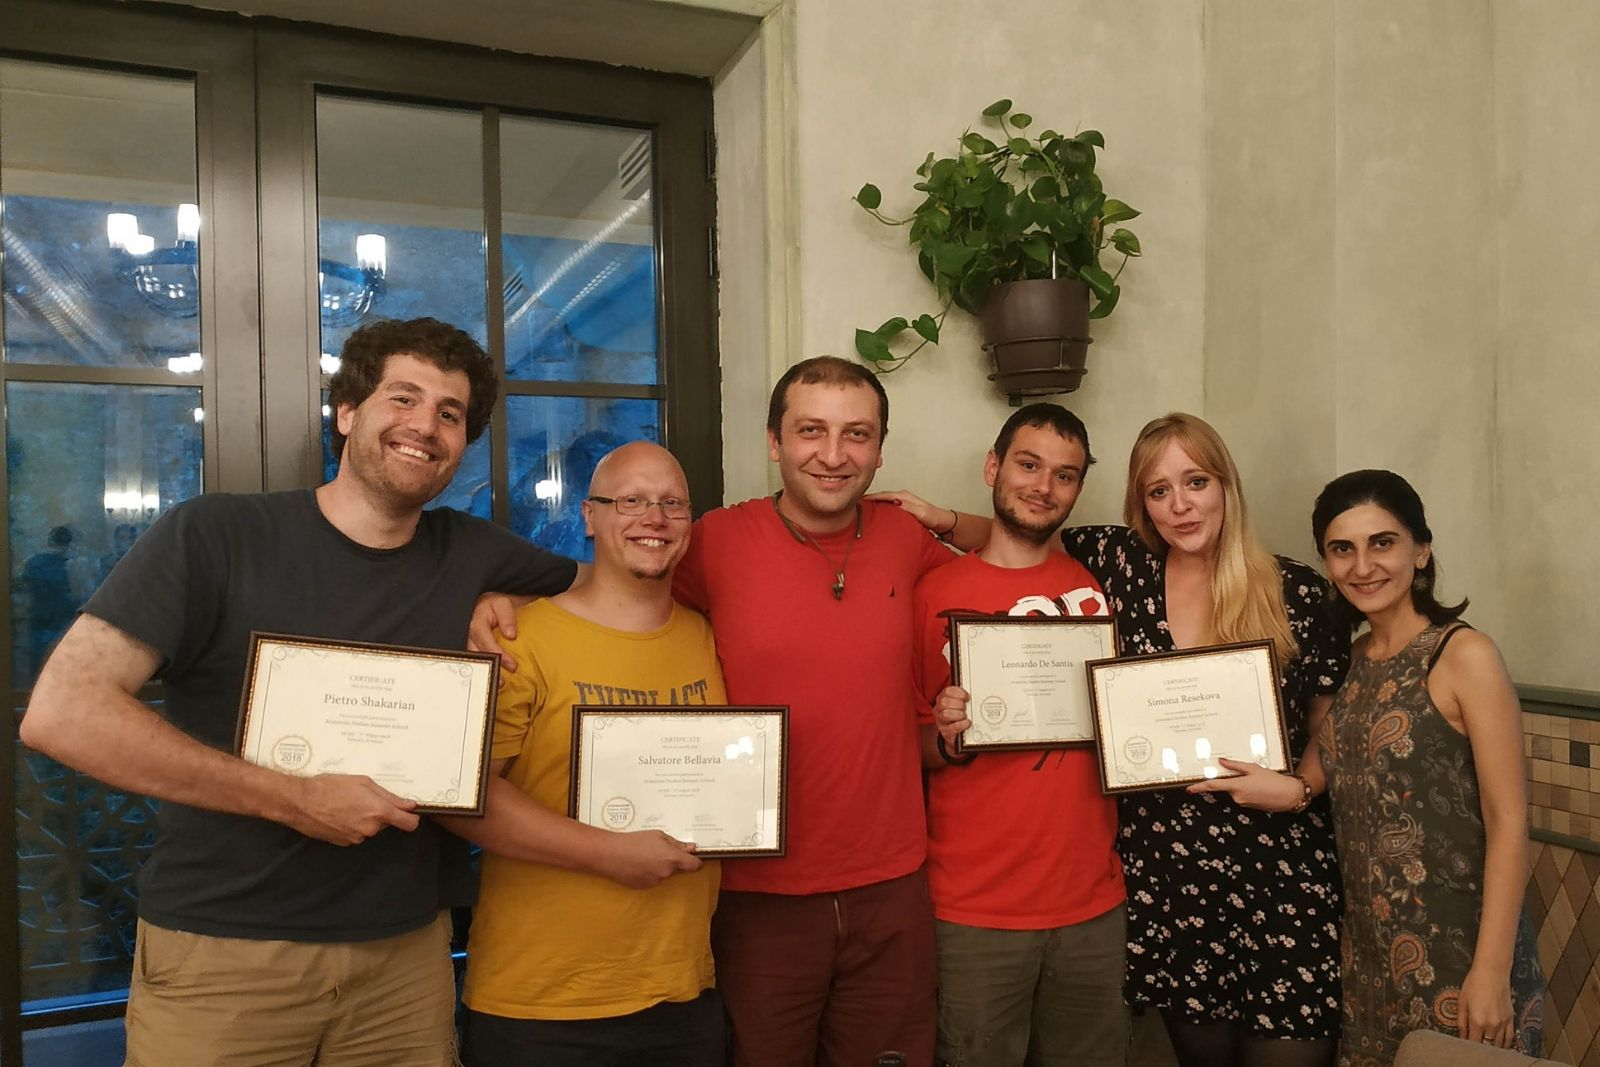 2018 Armenian language summer school participants received their certificates